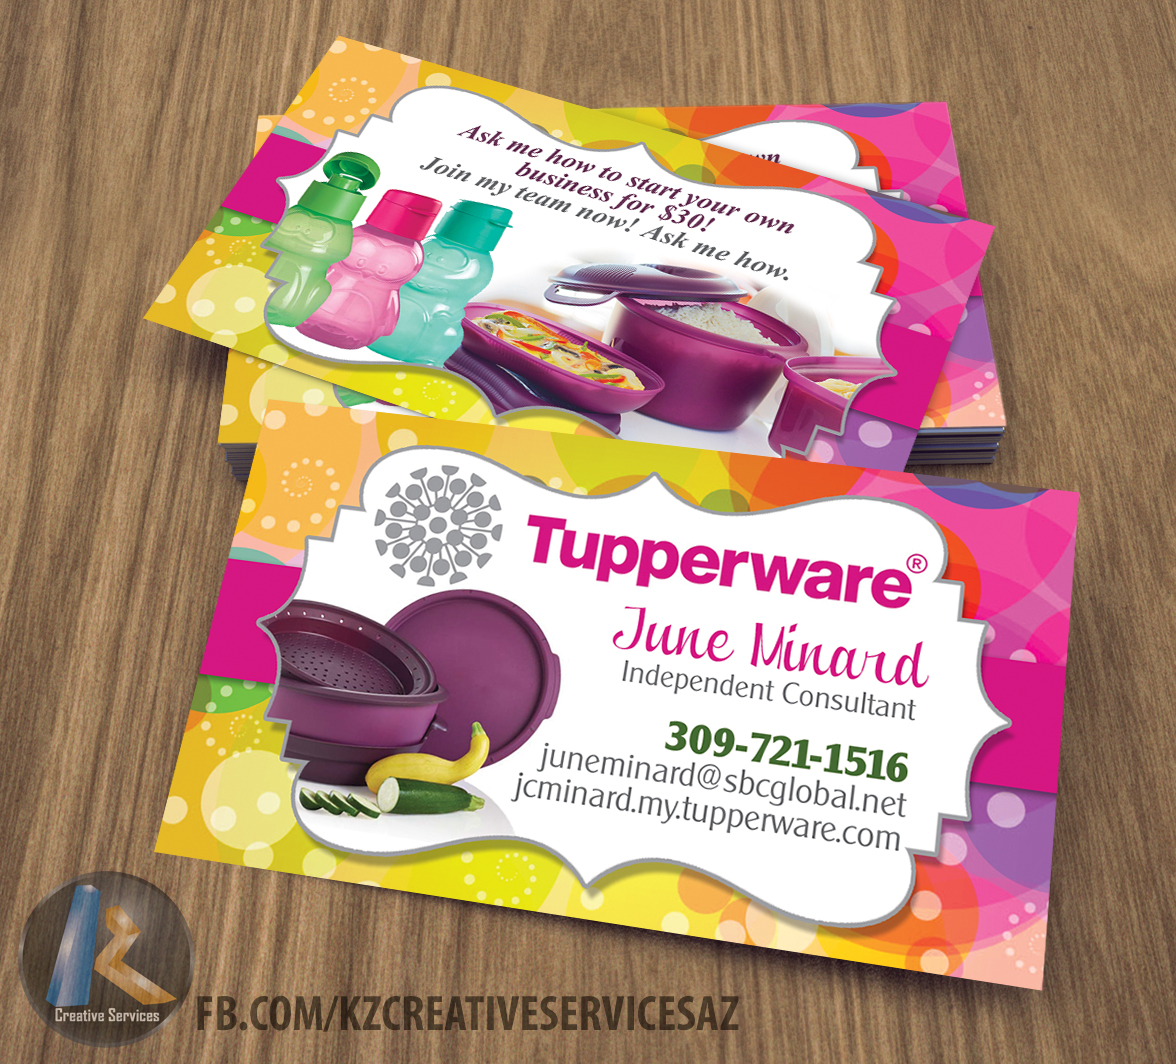 tupperware business cards style 3 - Tupperware Business Cards